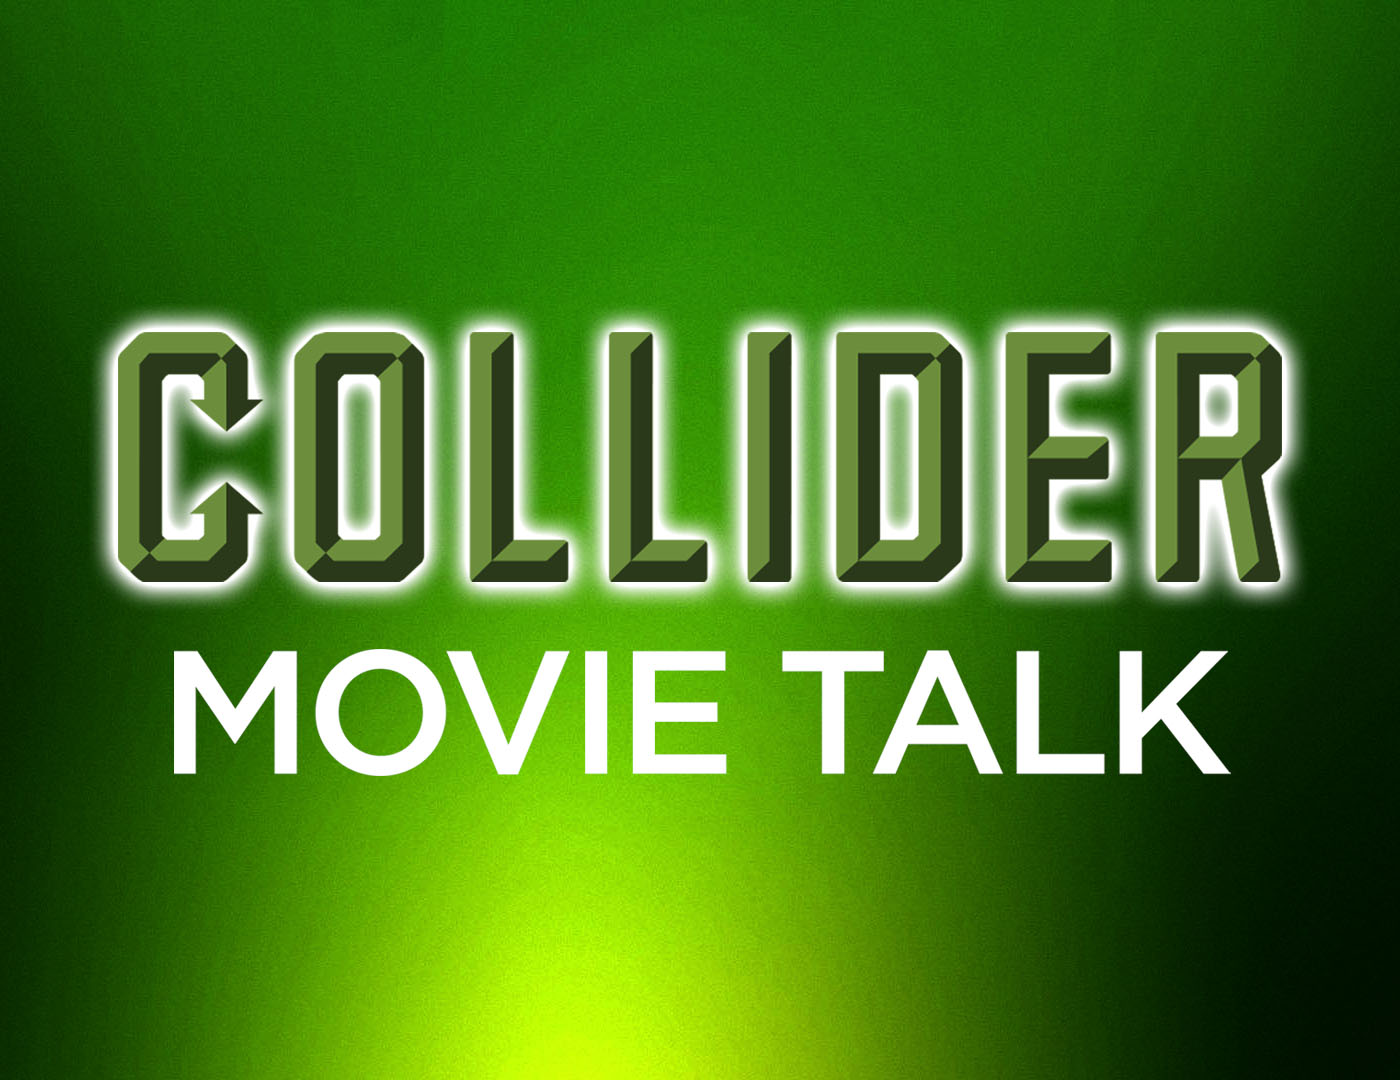 Spider-Man Images: Who's The Redhead? - Collider Movie Talk